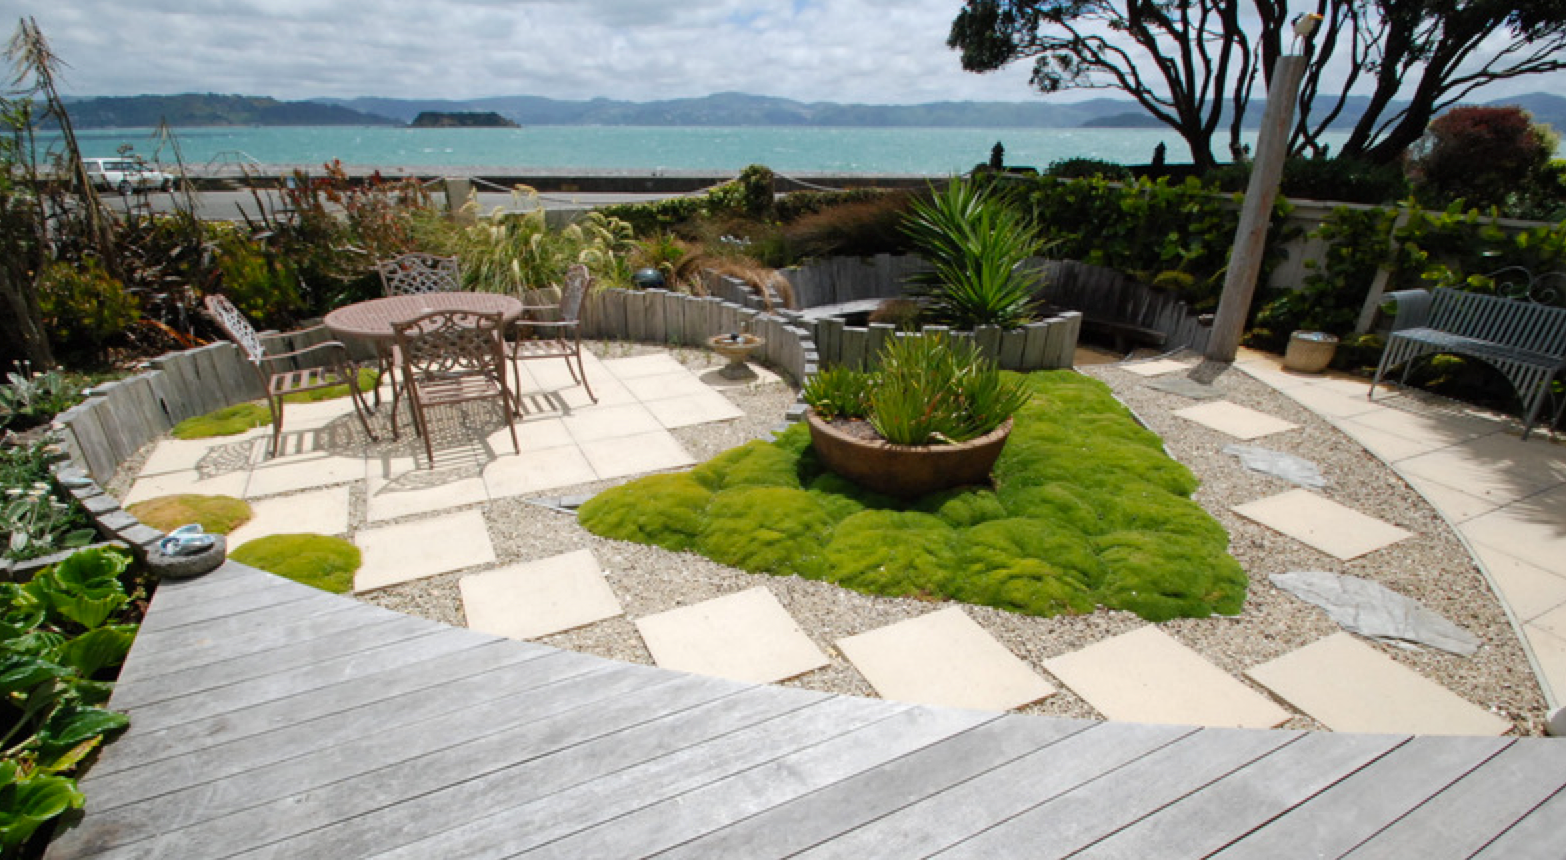 Windy beach gardendesign wellington.png